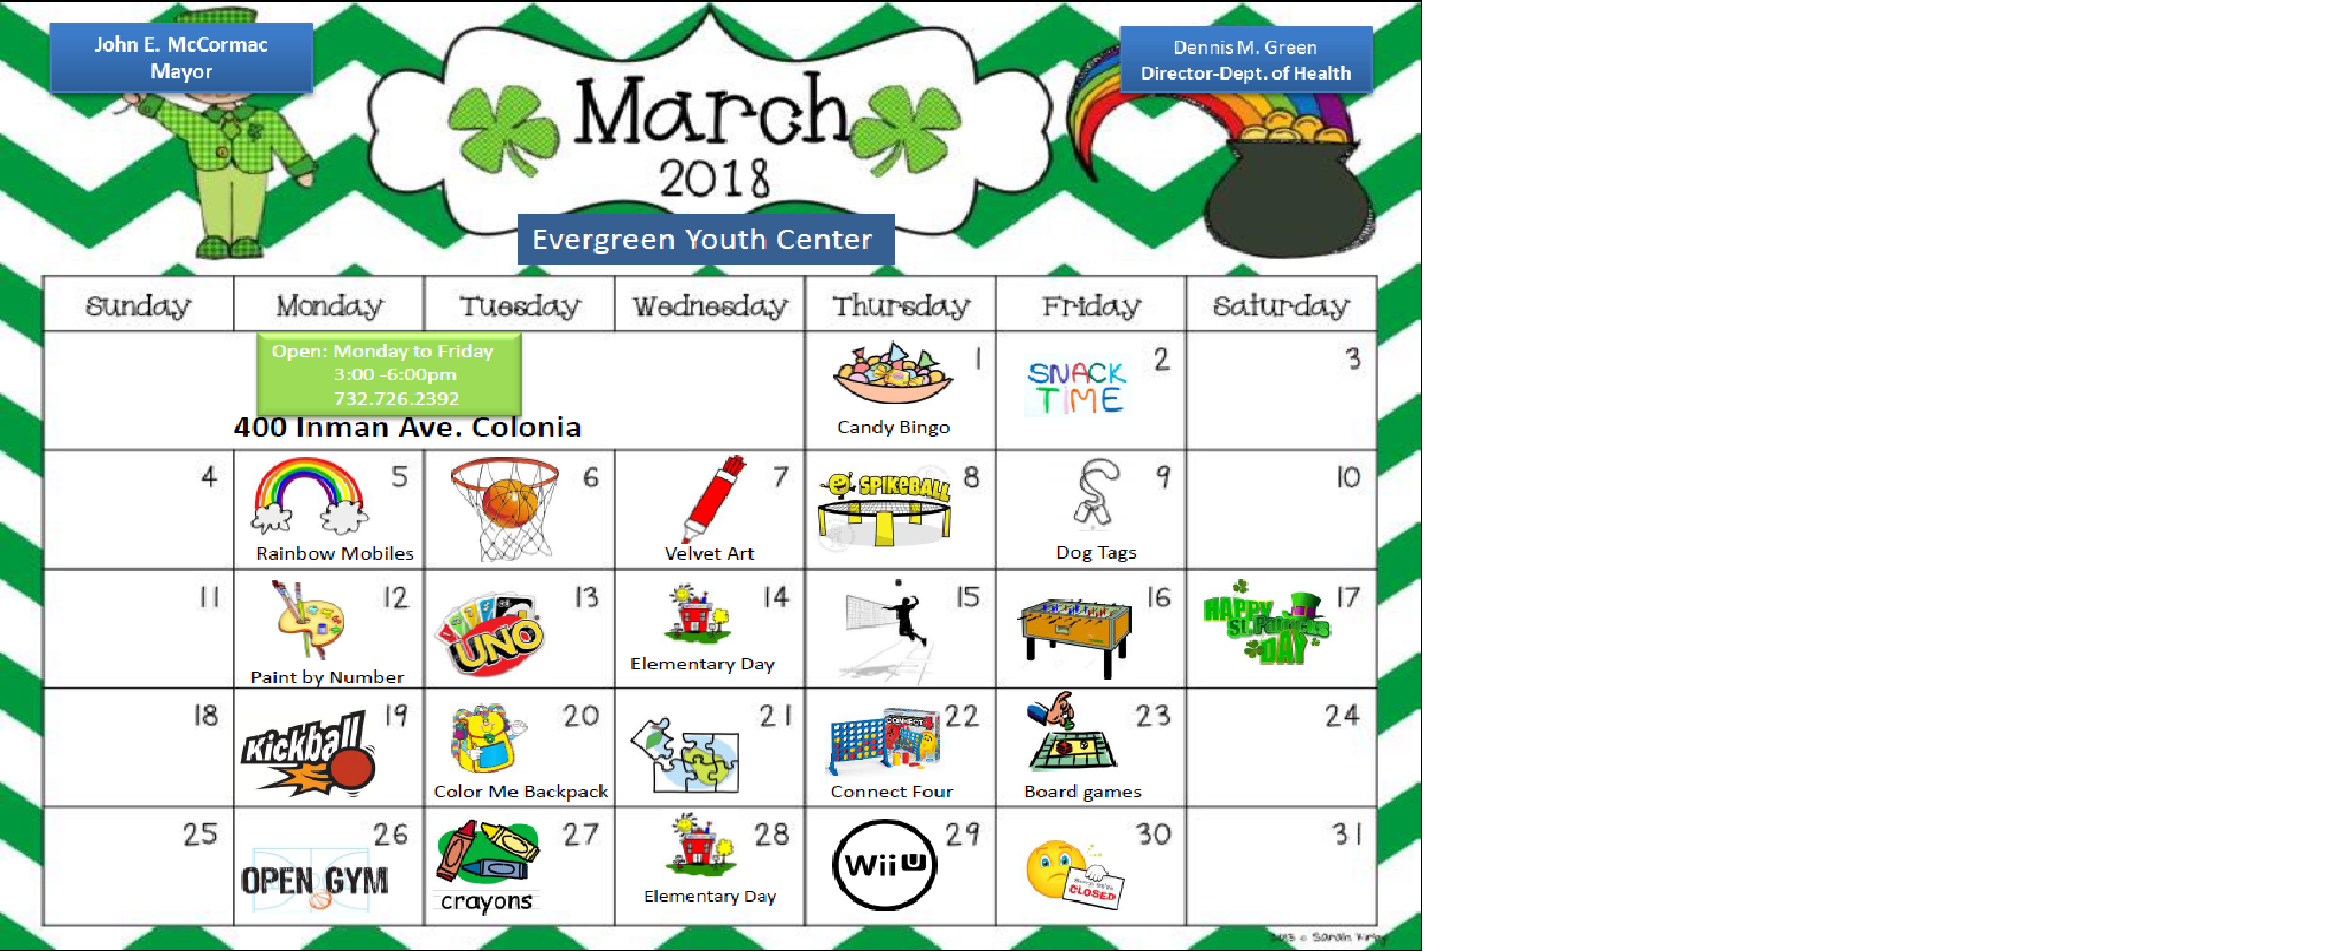 March 2018 youth center calendar pic